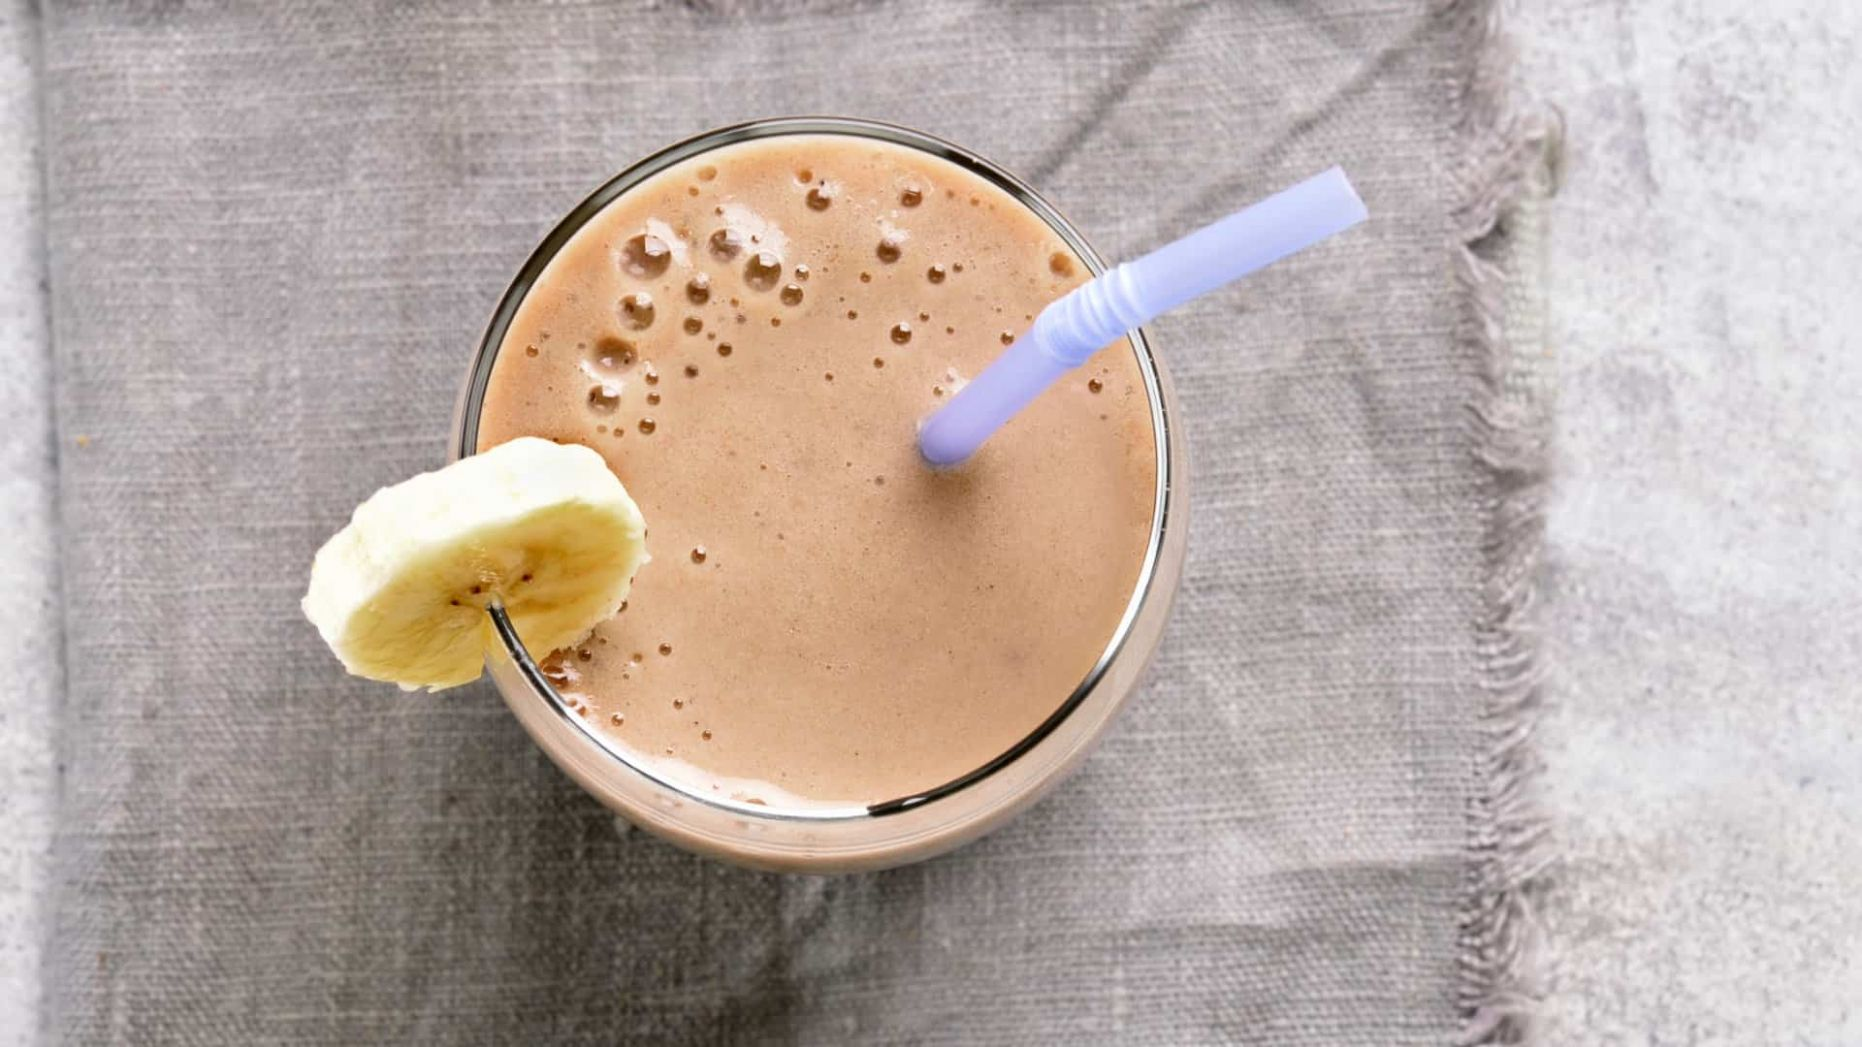 Protein shakes: Myth or magic for losing weight